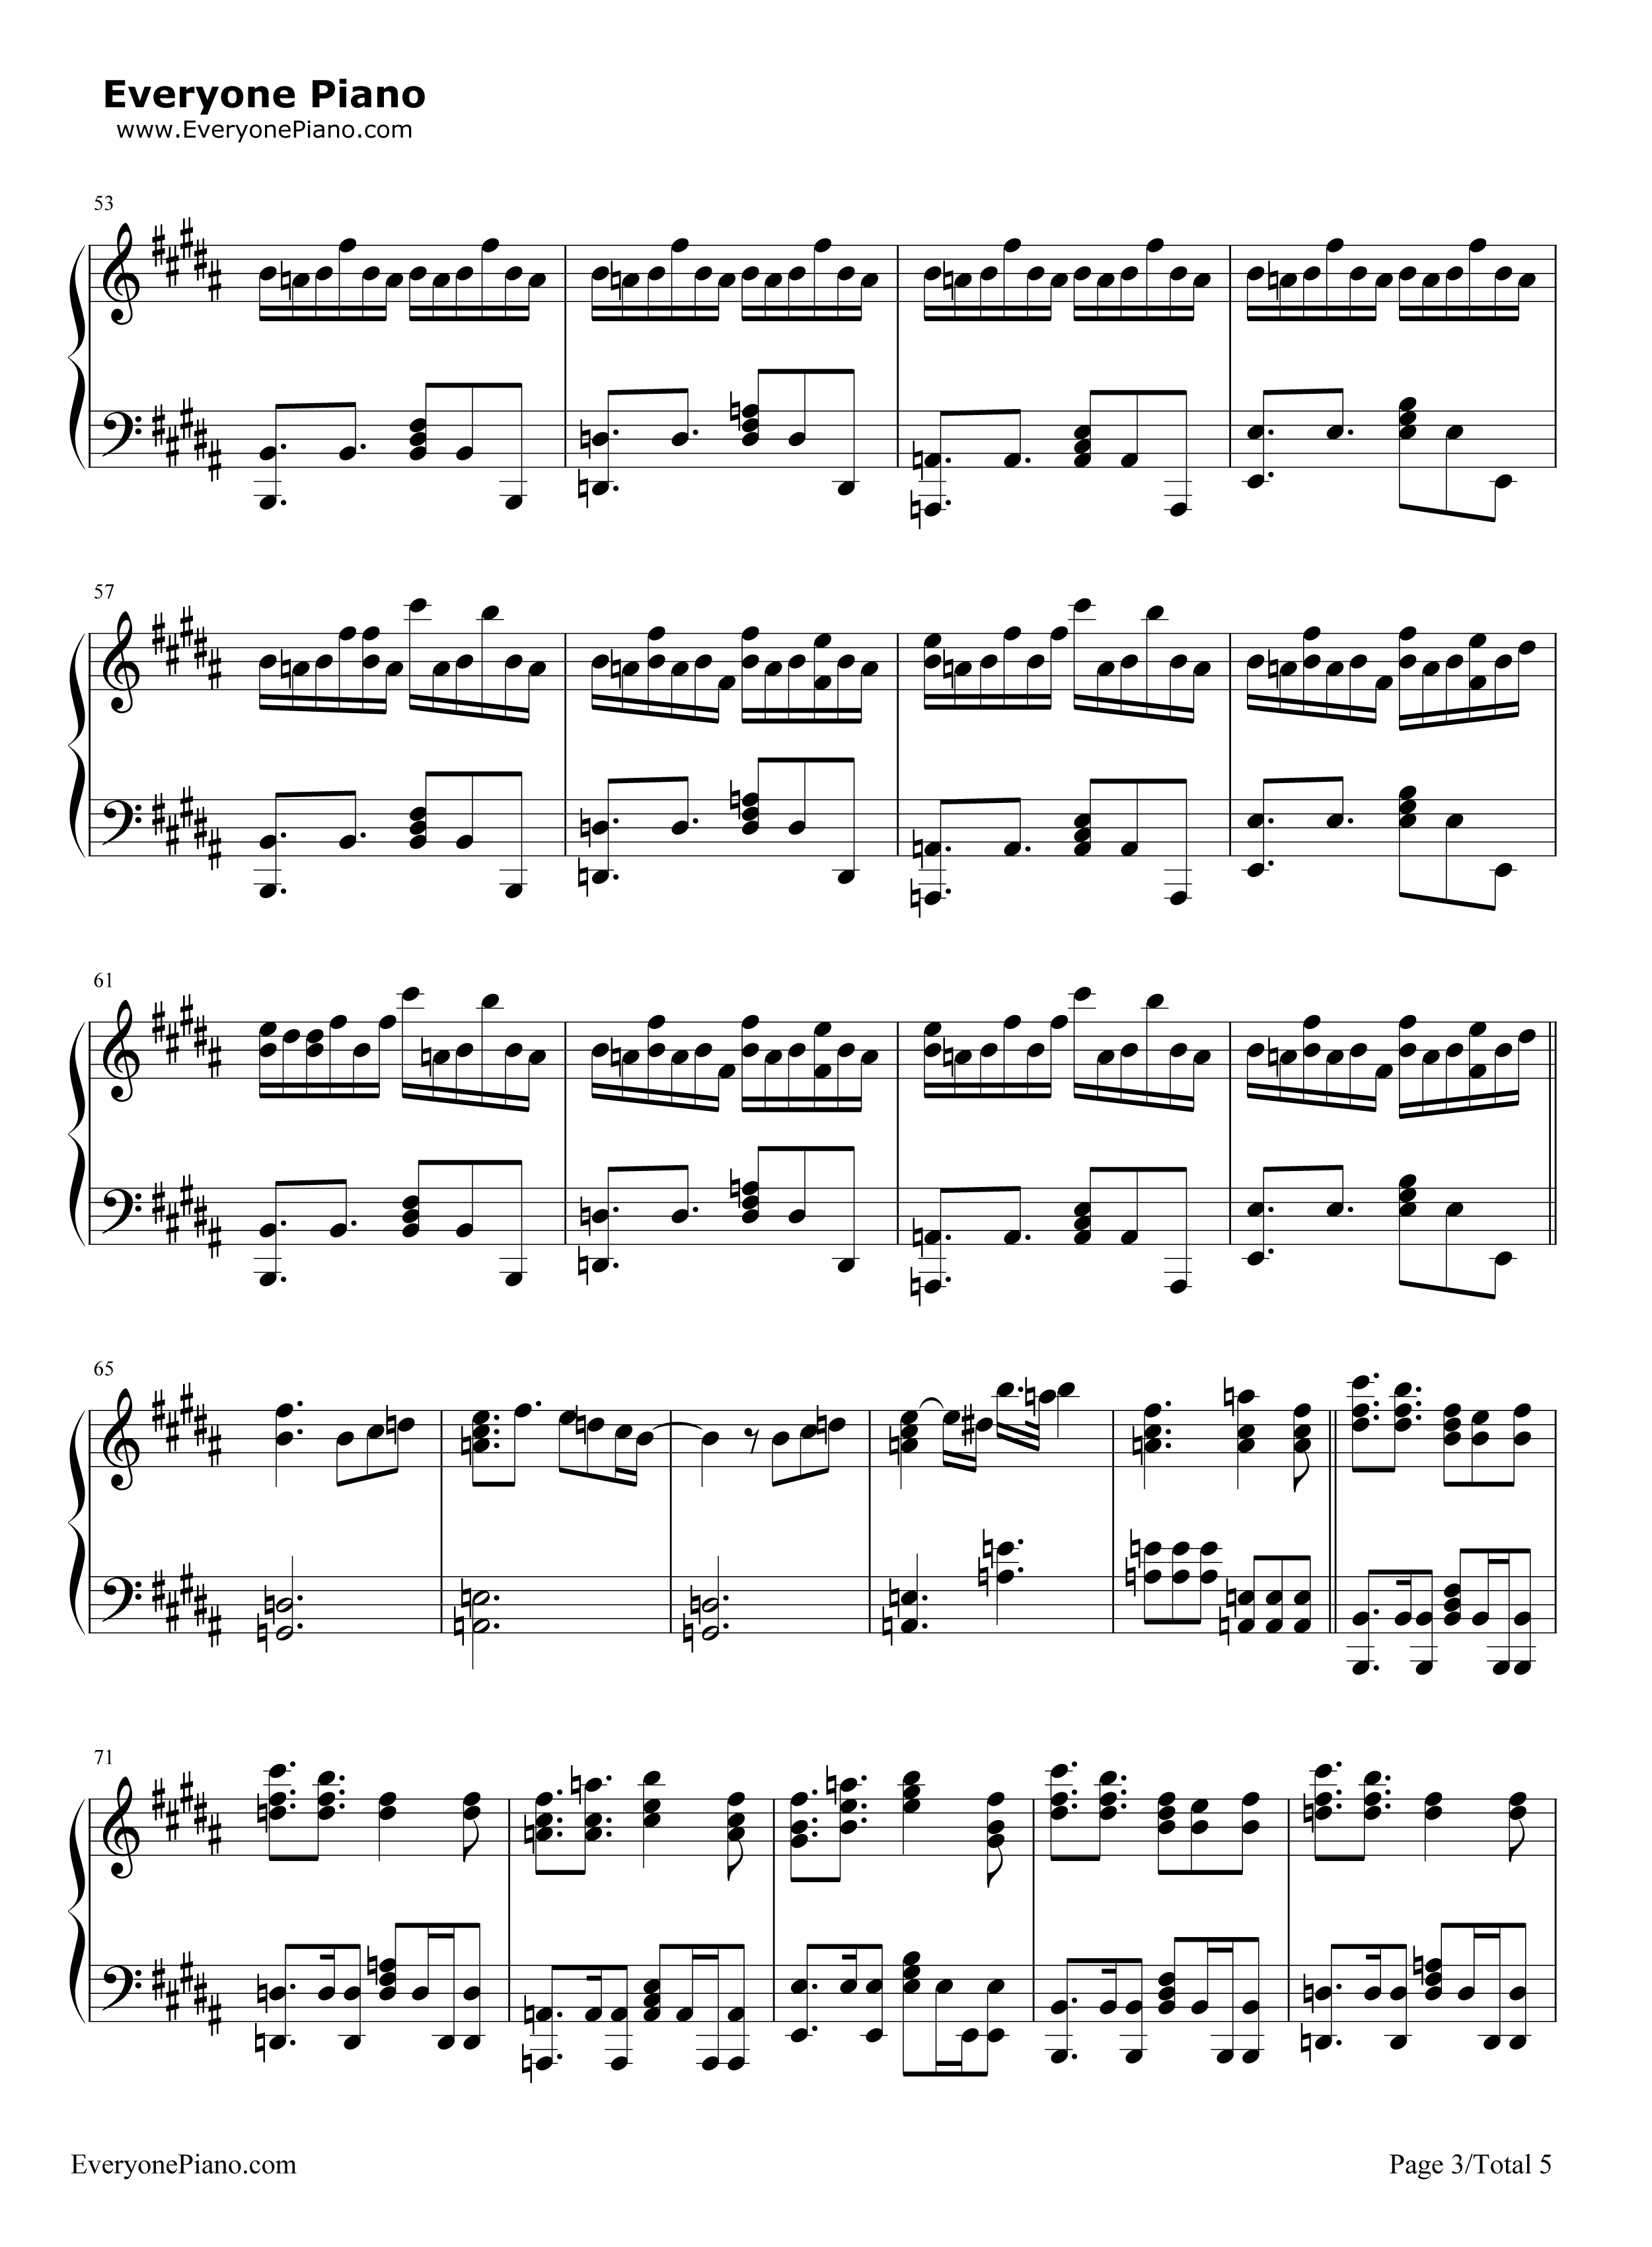 Piano chords never let me go piano ideas never let me go piano chords florence ideas hexwebz Image collections